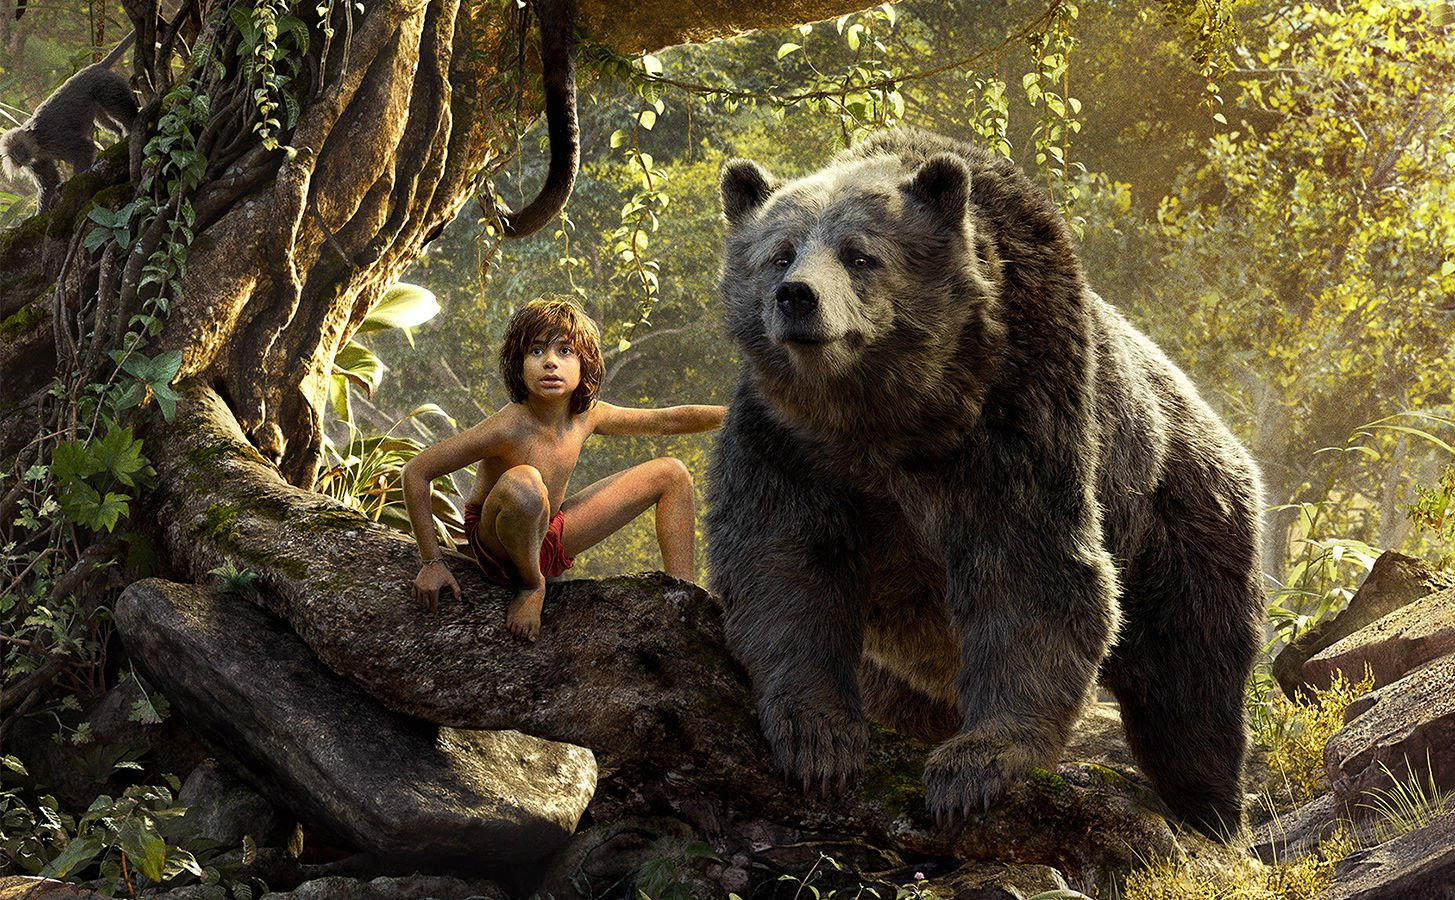 53 The Jungle Book HD Wallpapers | Backgrounds - Wallpaper Abyss